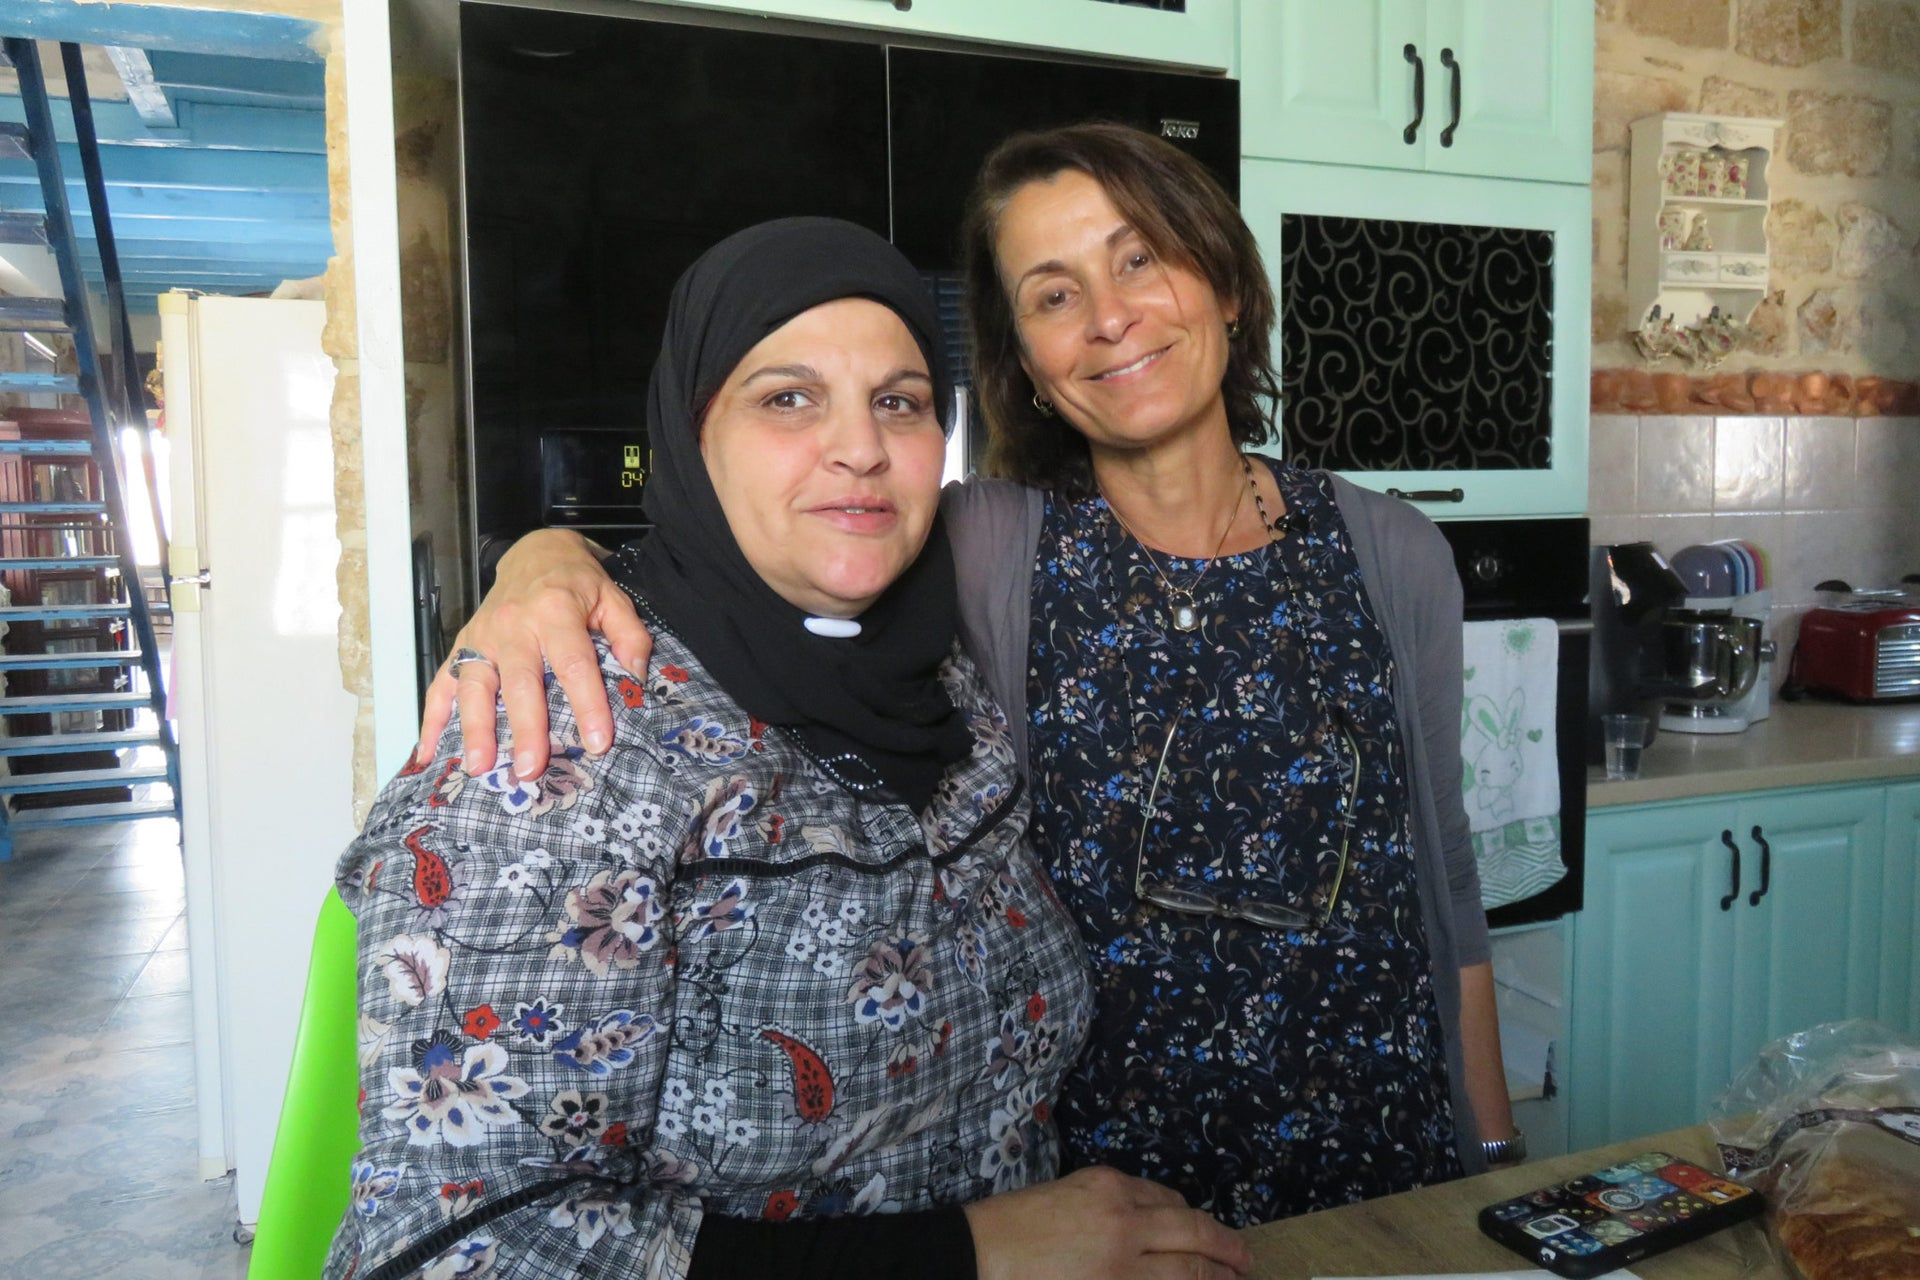 Maryam Ayek, who plans to turn four rooms in her house into travel homestays.